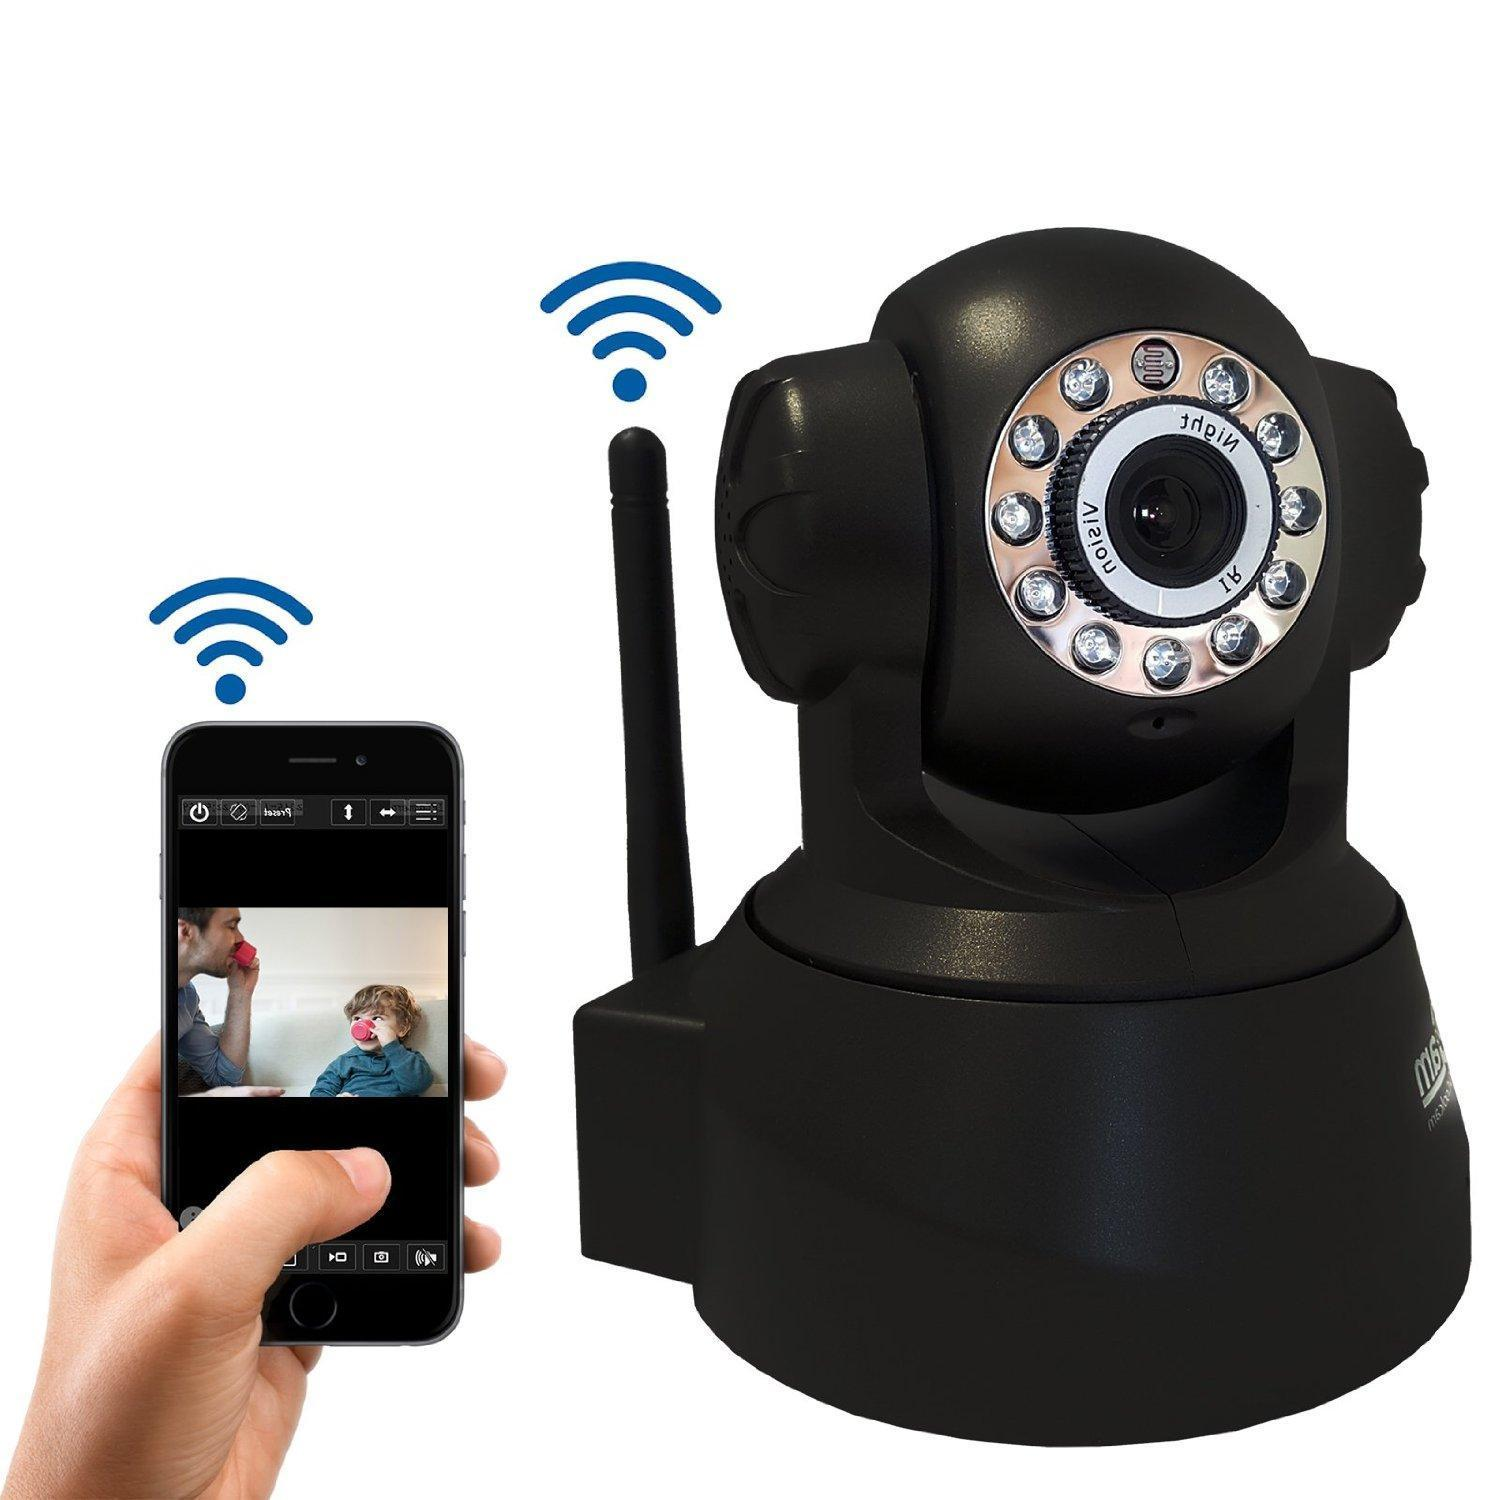 cctv camera wifi ip camera smartphone cctv security. Black Bedroom Furniture Sets. Home Design Ideas